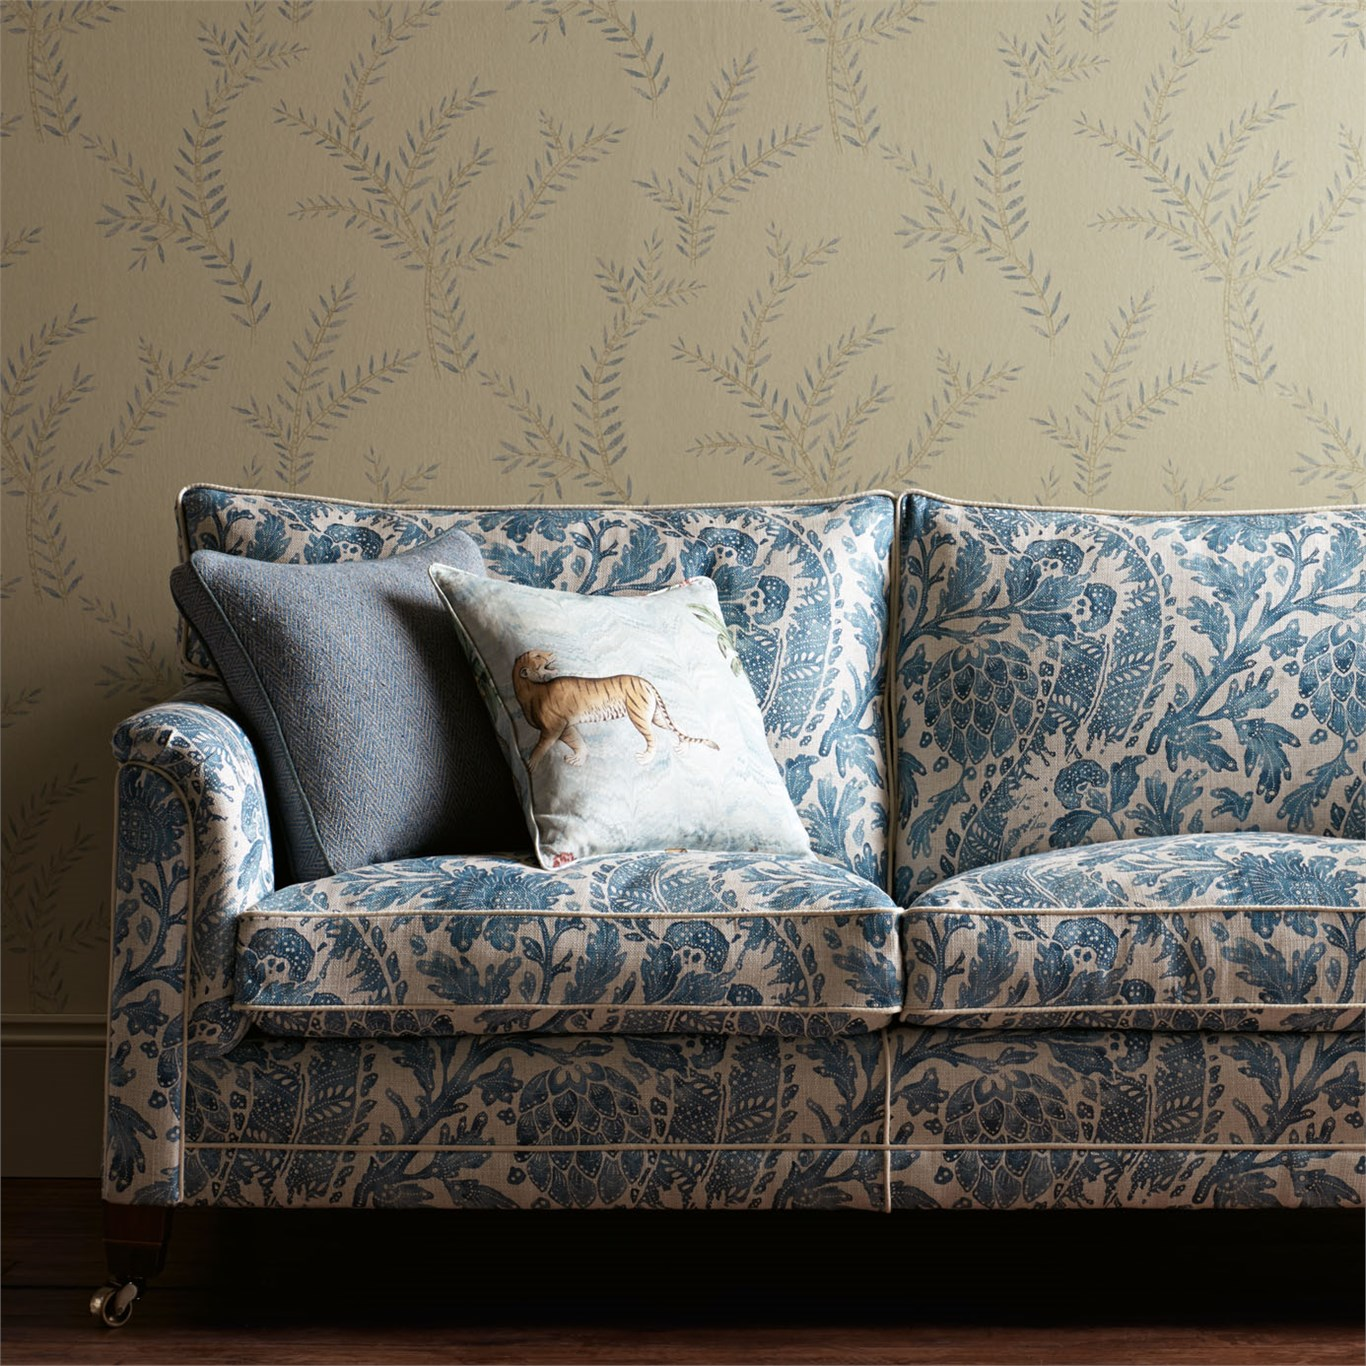 Sofa Fabric In Jaipur: Page 34